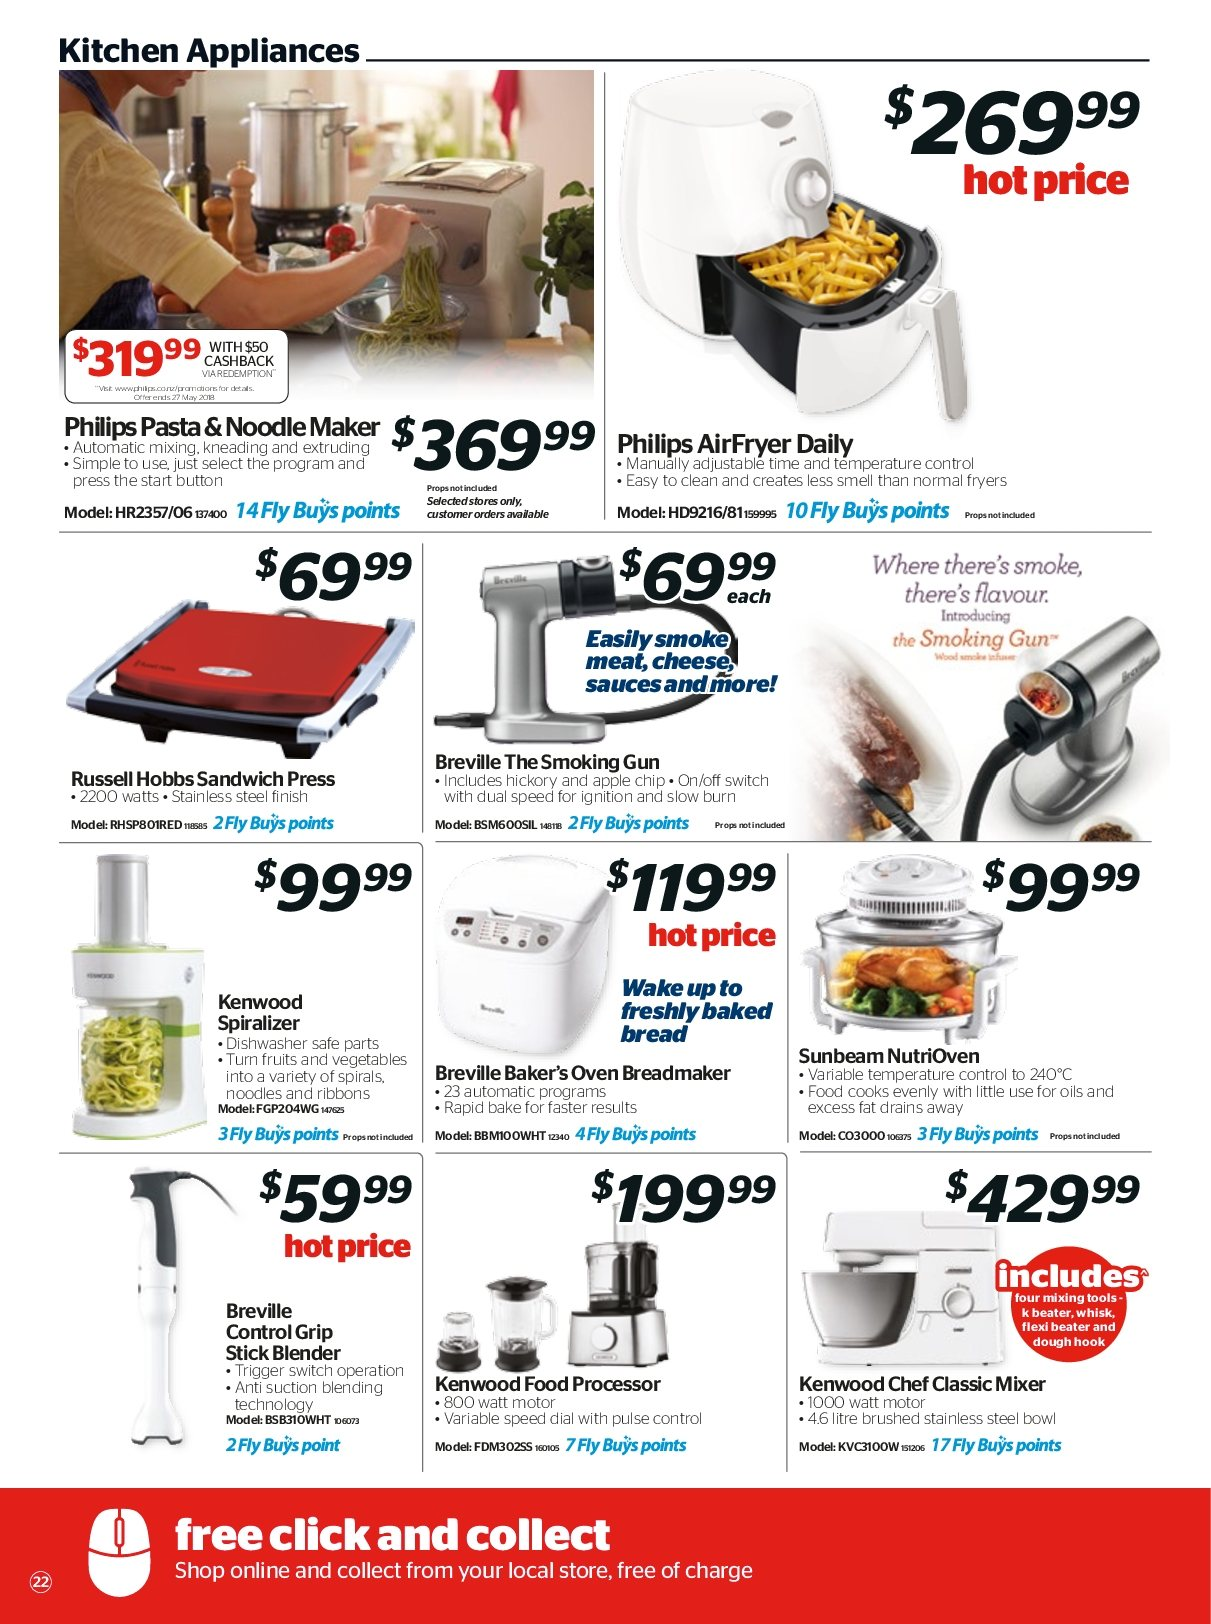 Noel Leeming mailer - 18.04.2018 - 24.04.2018 - Sales products - apple, blender, bread, dishwasher, mixer, stick, switch, gun, hook, kitchen, philips, noodle, oven, cheese, noodles, sandwich, vegetables, processor, bow, pasta, kenwood, russell hobbs, food processor. Page 22.